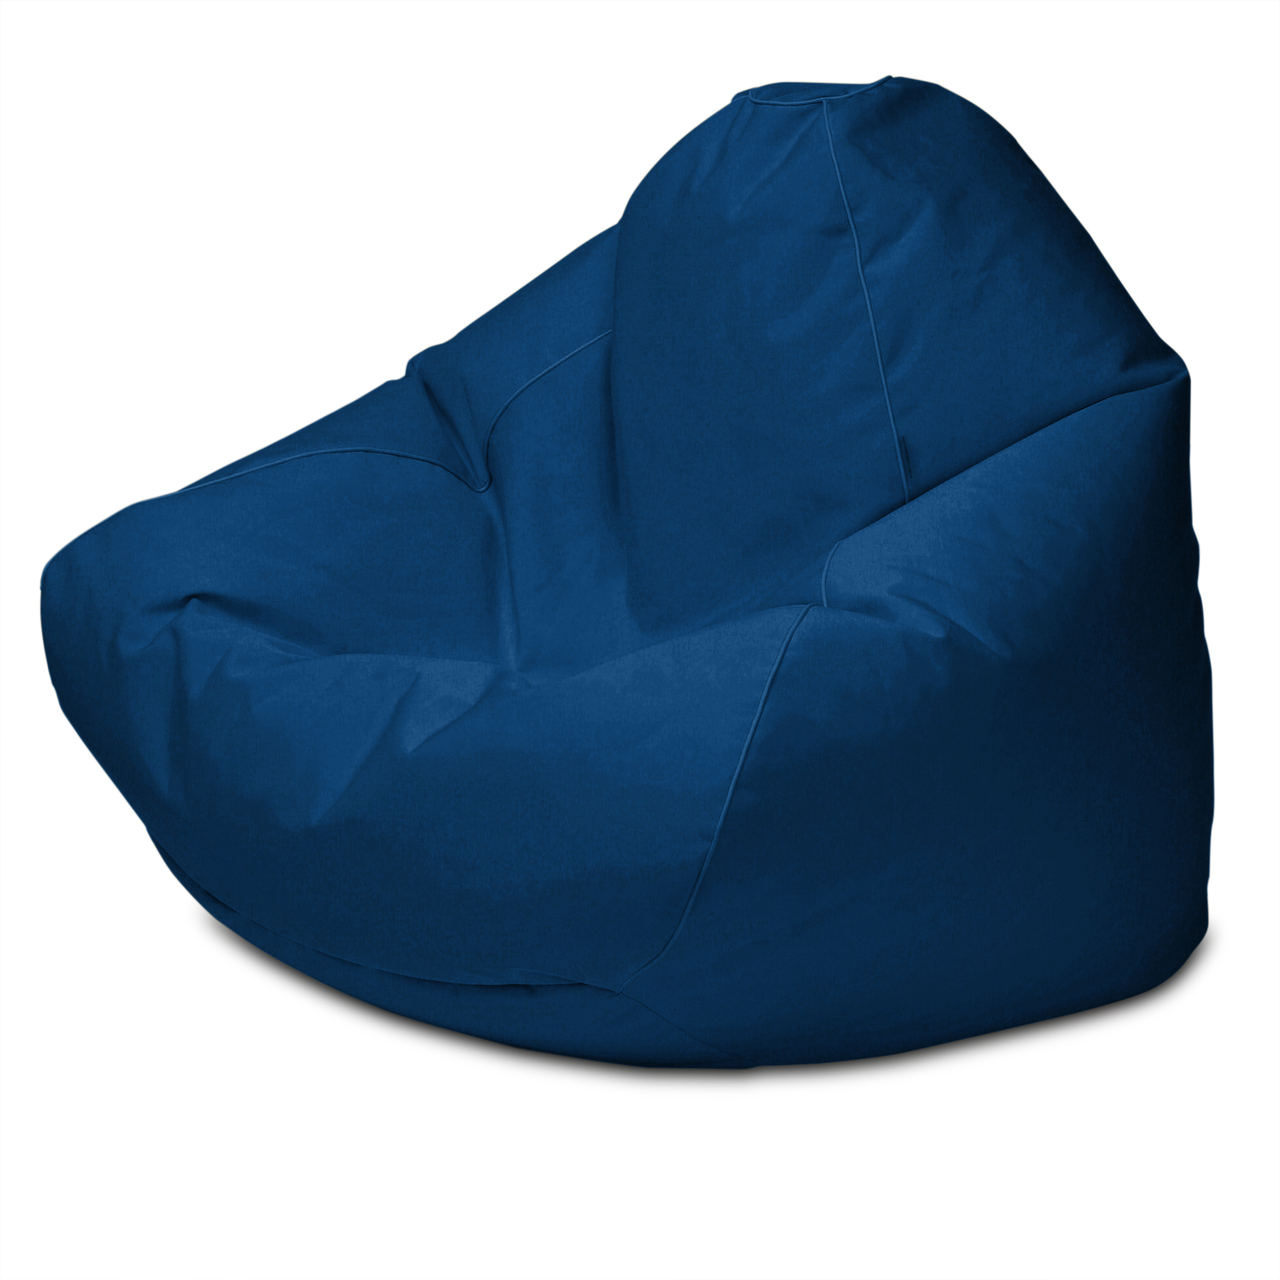 Sunbrella Outdoor Queen Size Bean Bag in ocean blue